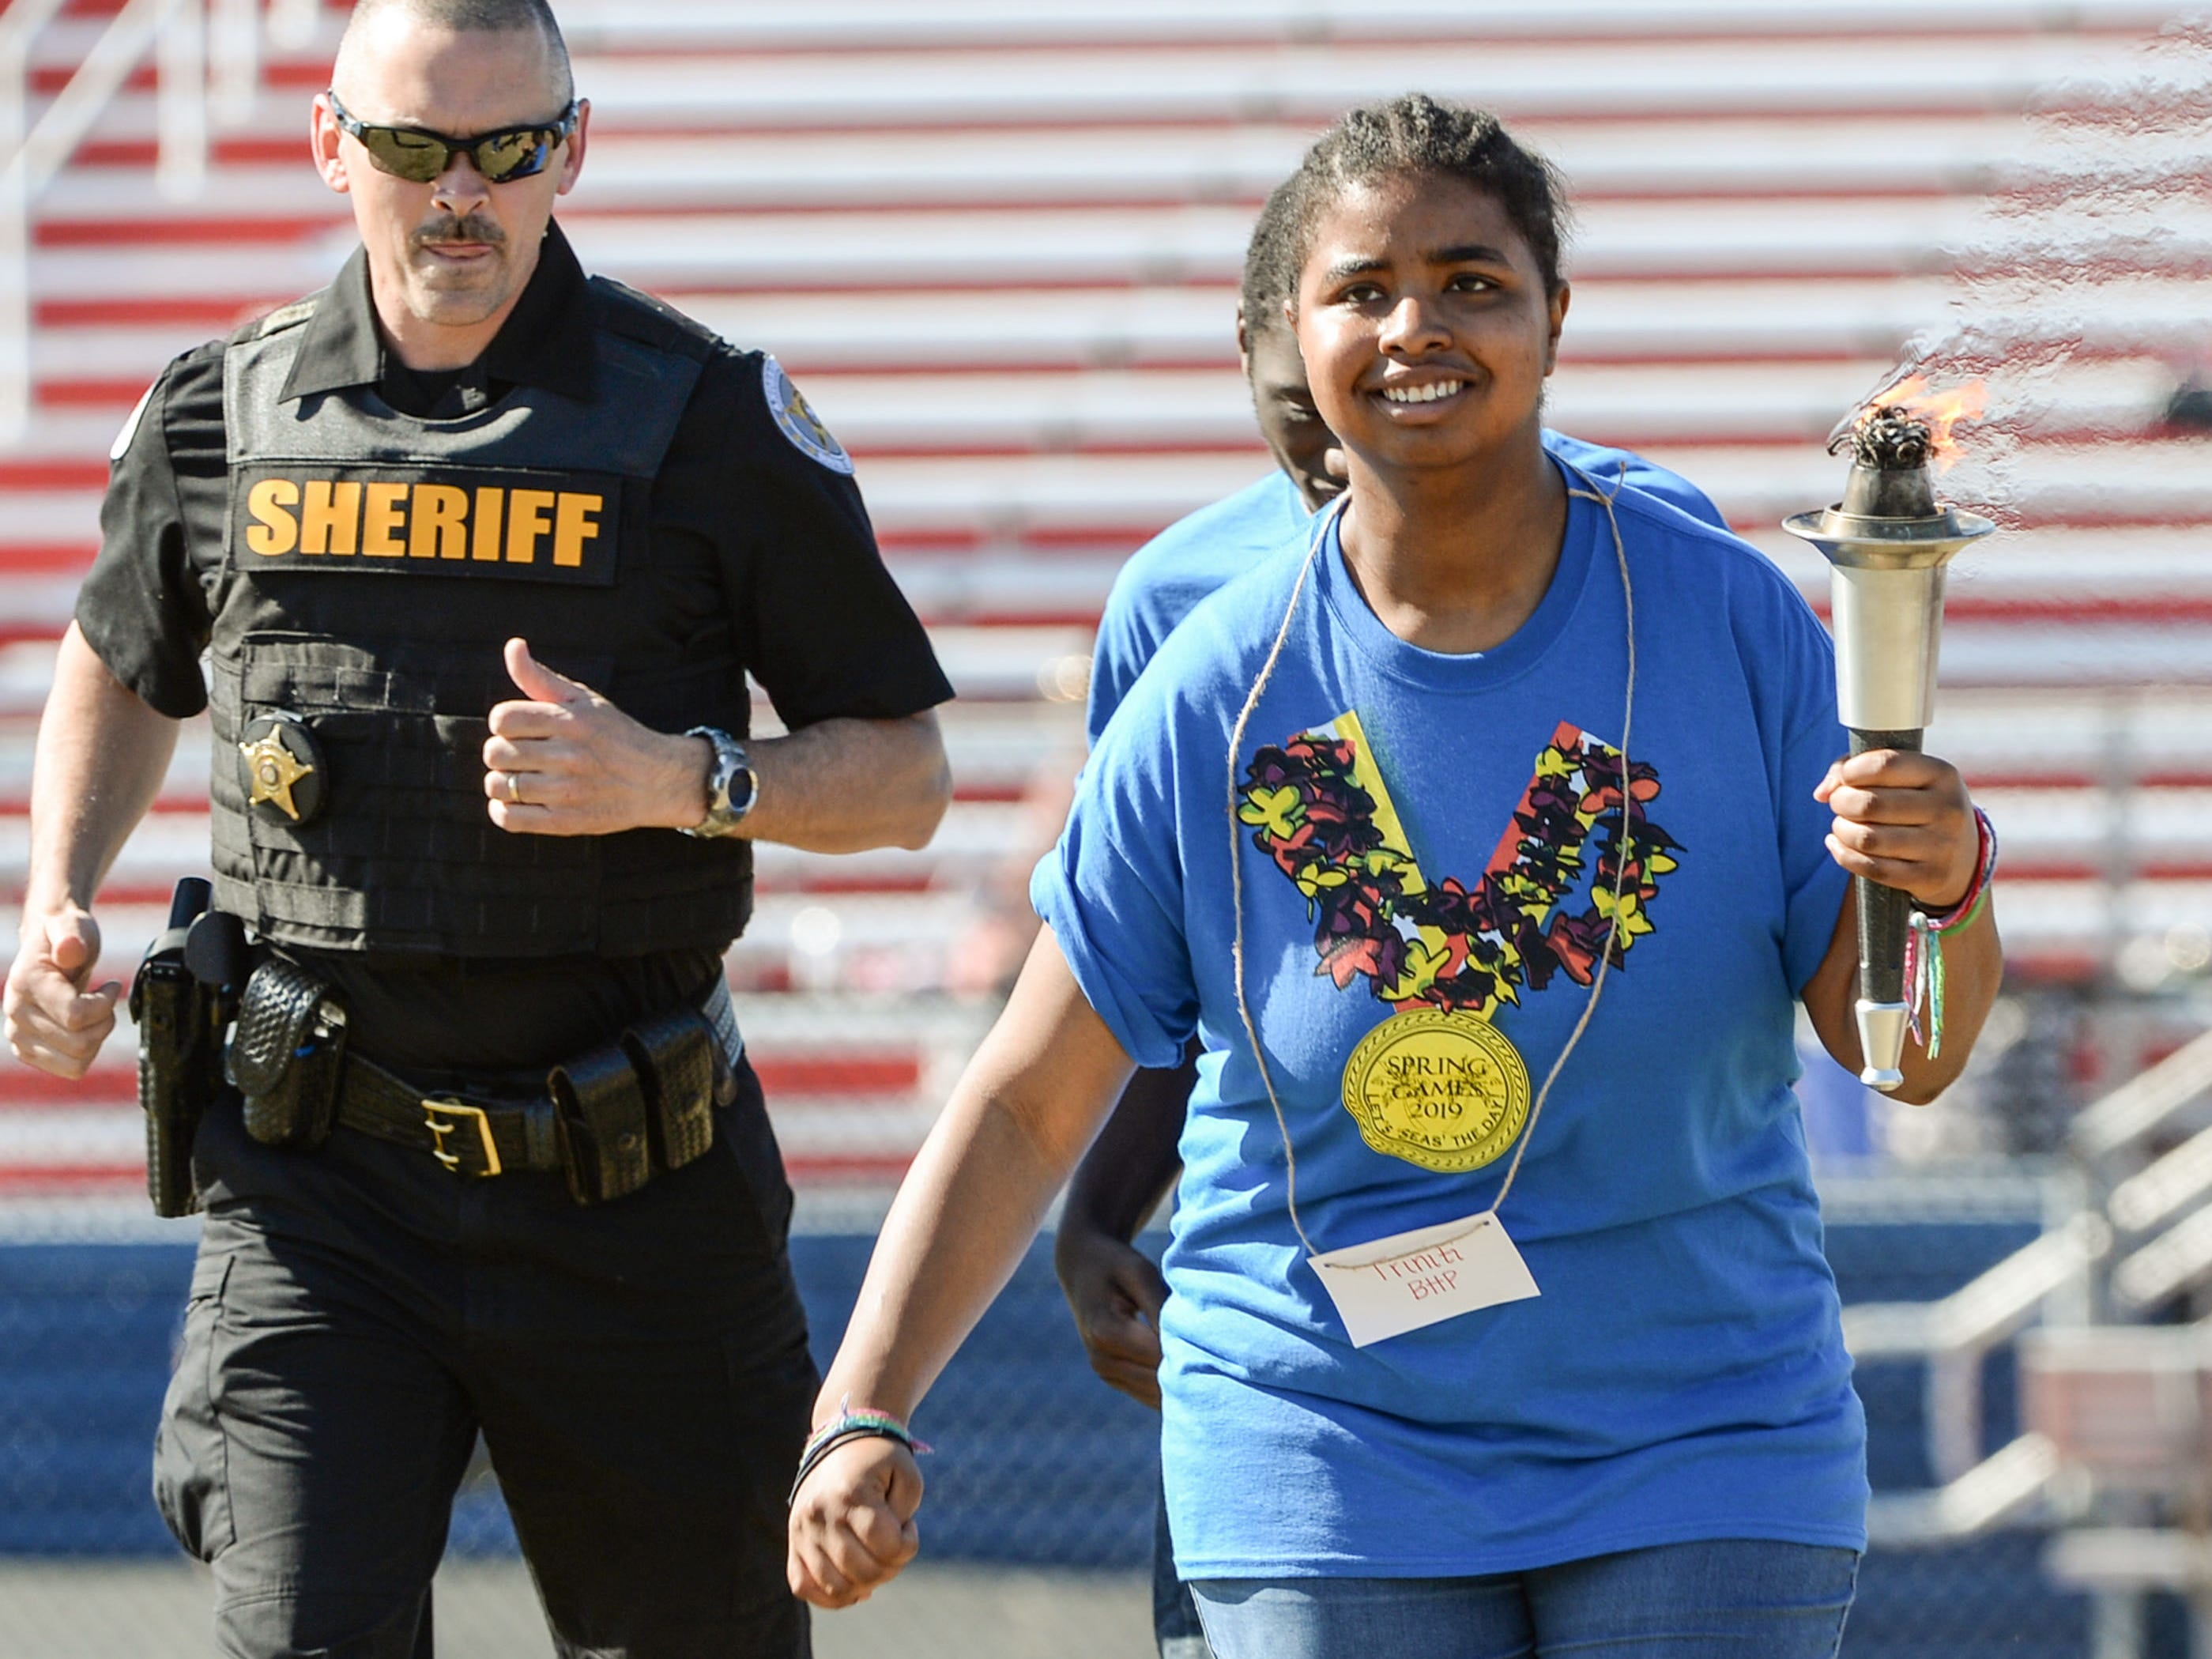 Capt. Bill Vaughn, left, of the Anderson County Sheriff's Office escorts athlete Triniti Fields, a student from Belton-Honea Path High School, to light the flame for the Special Olympics South Carolina Area 14 Spring Games at Marlee Gambrell field at Belton-Honea Path High School Wednesday.